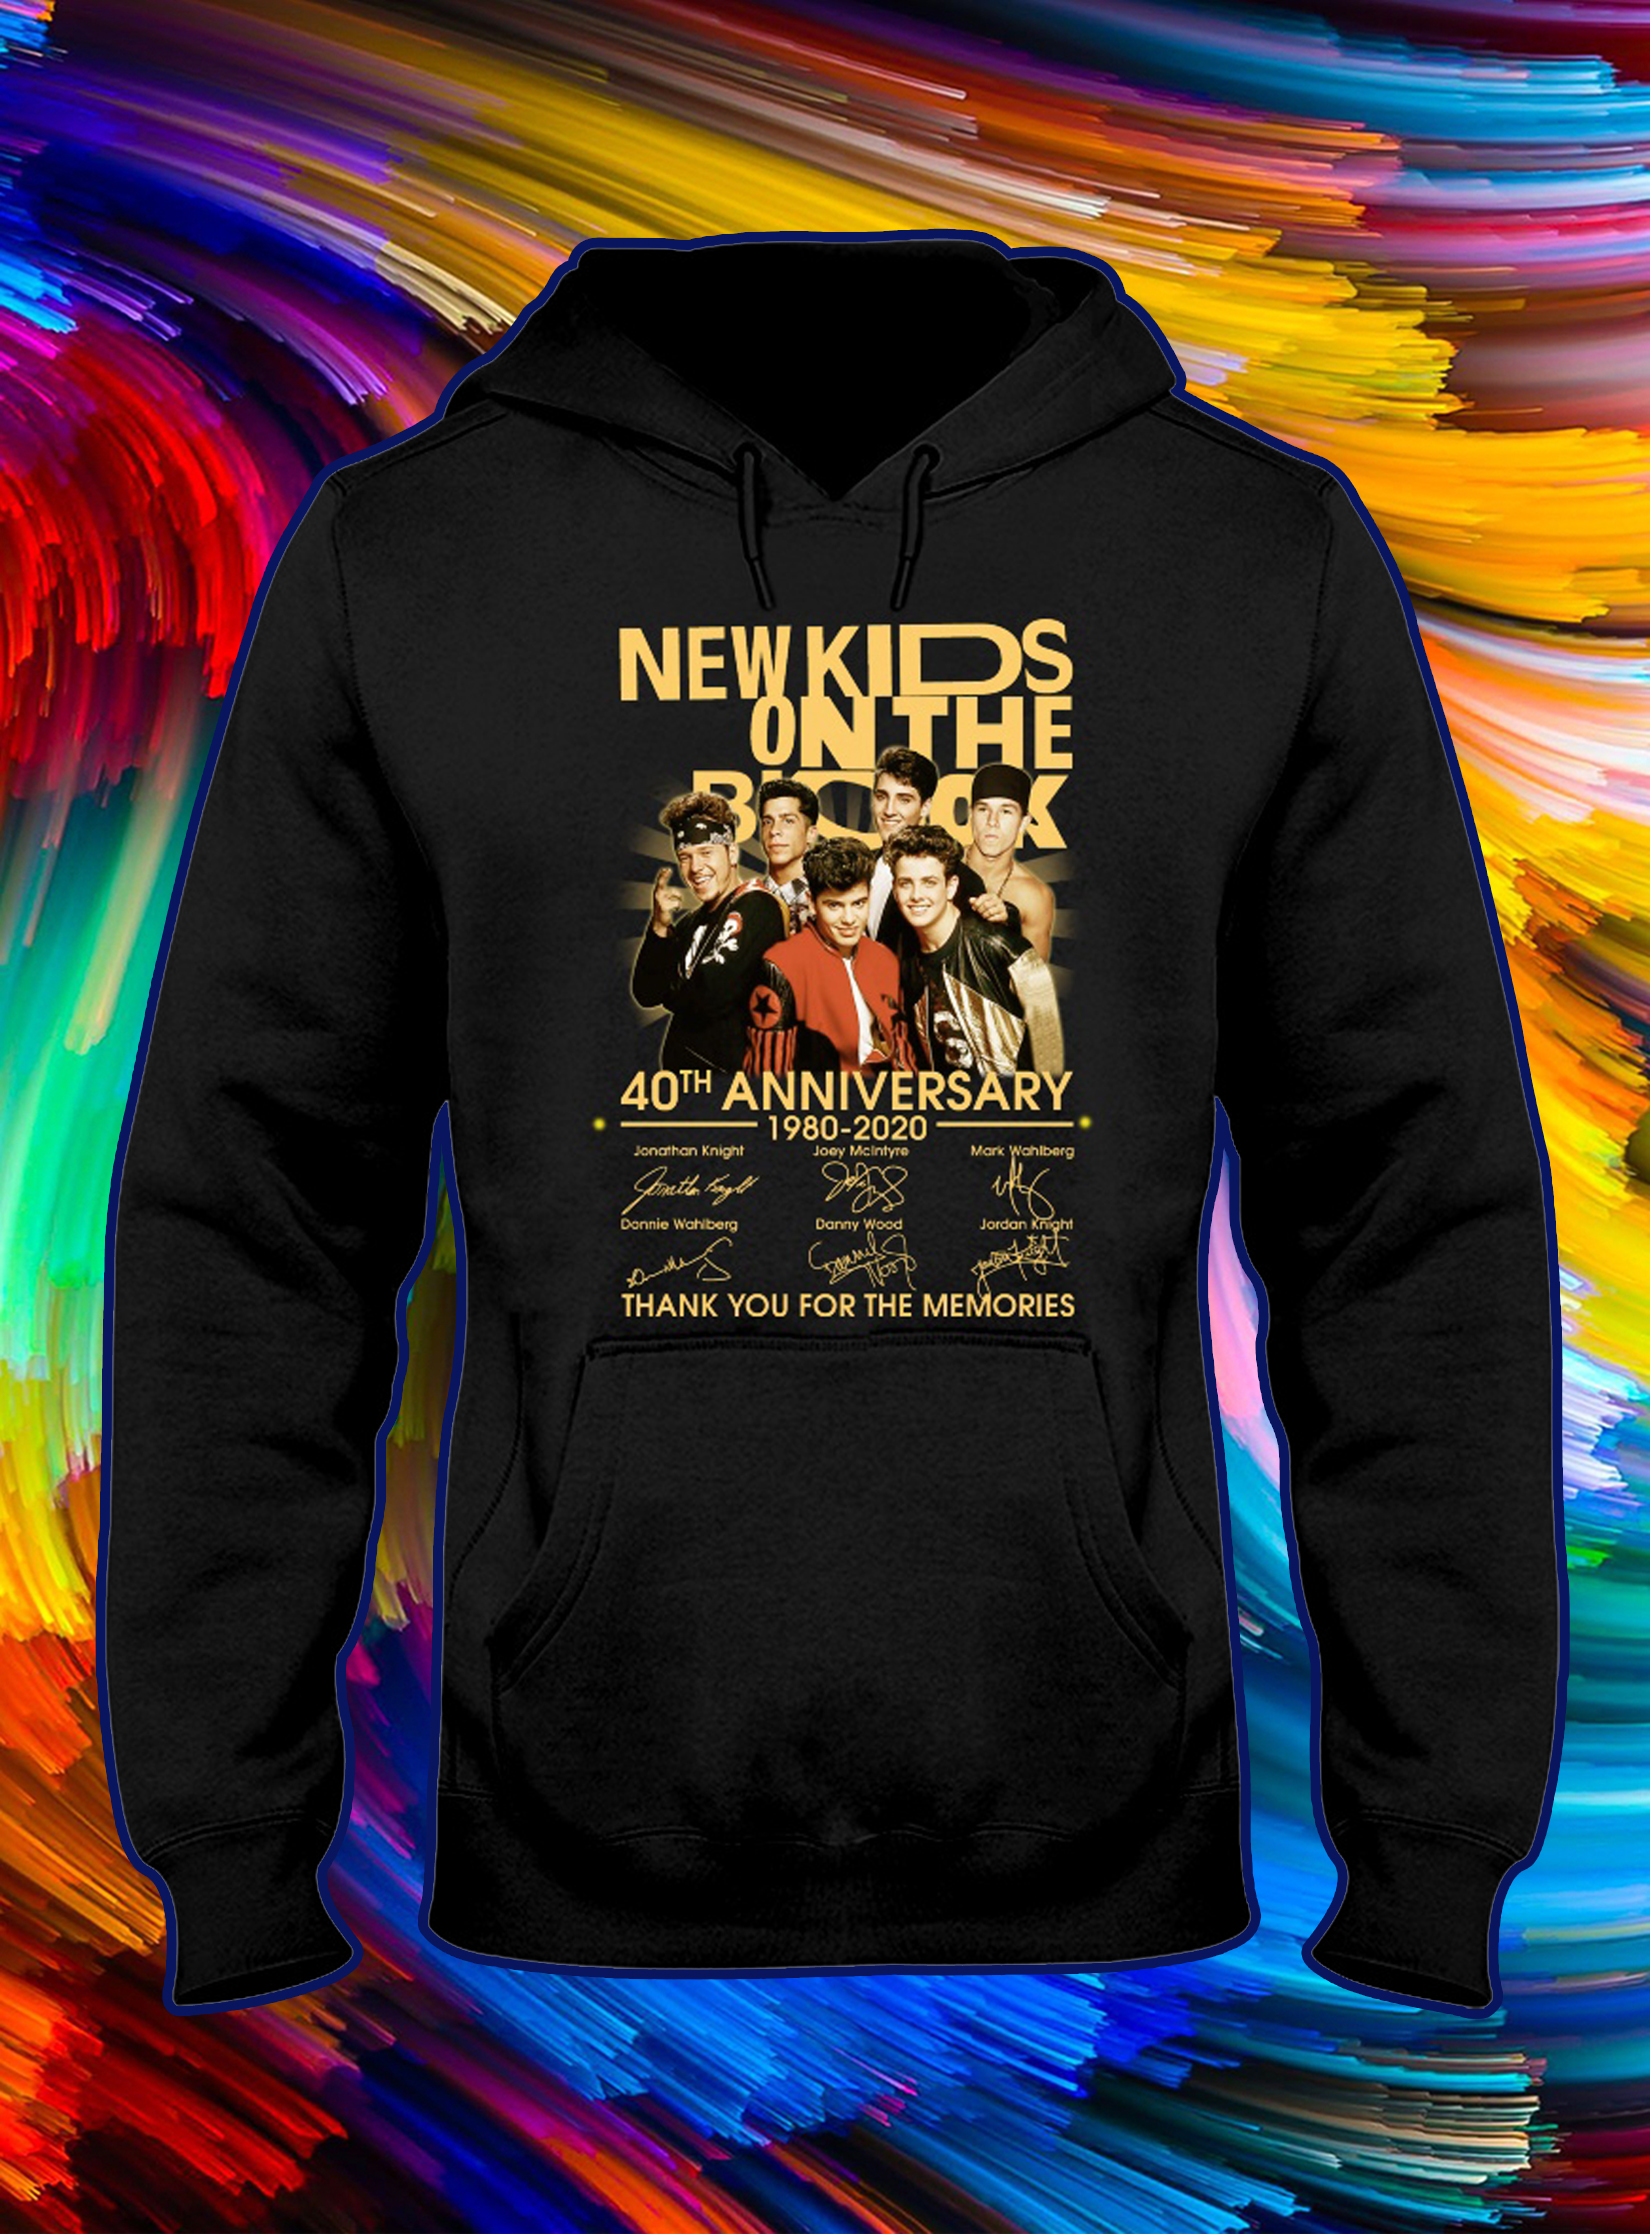 New kids on the block 40th anniversary thank you for the memories signature hoodie